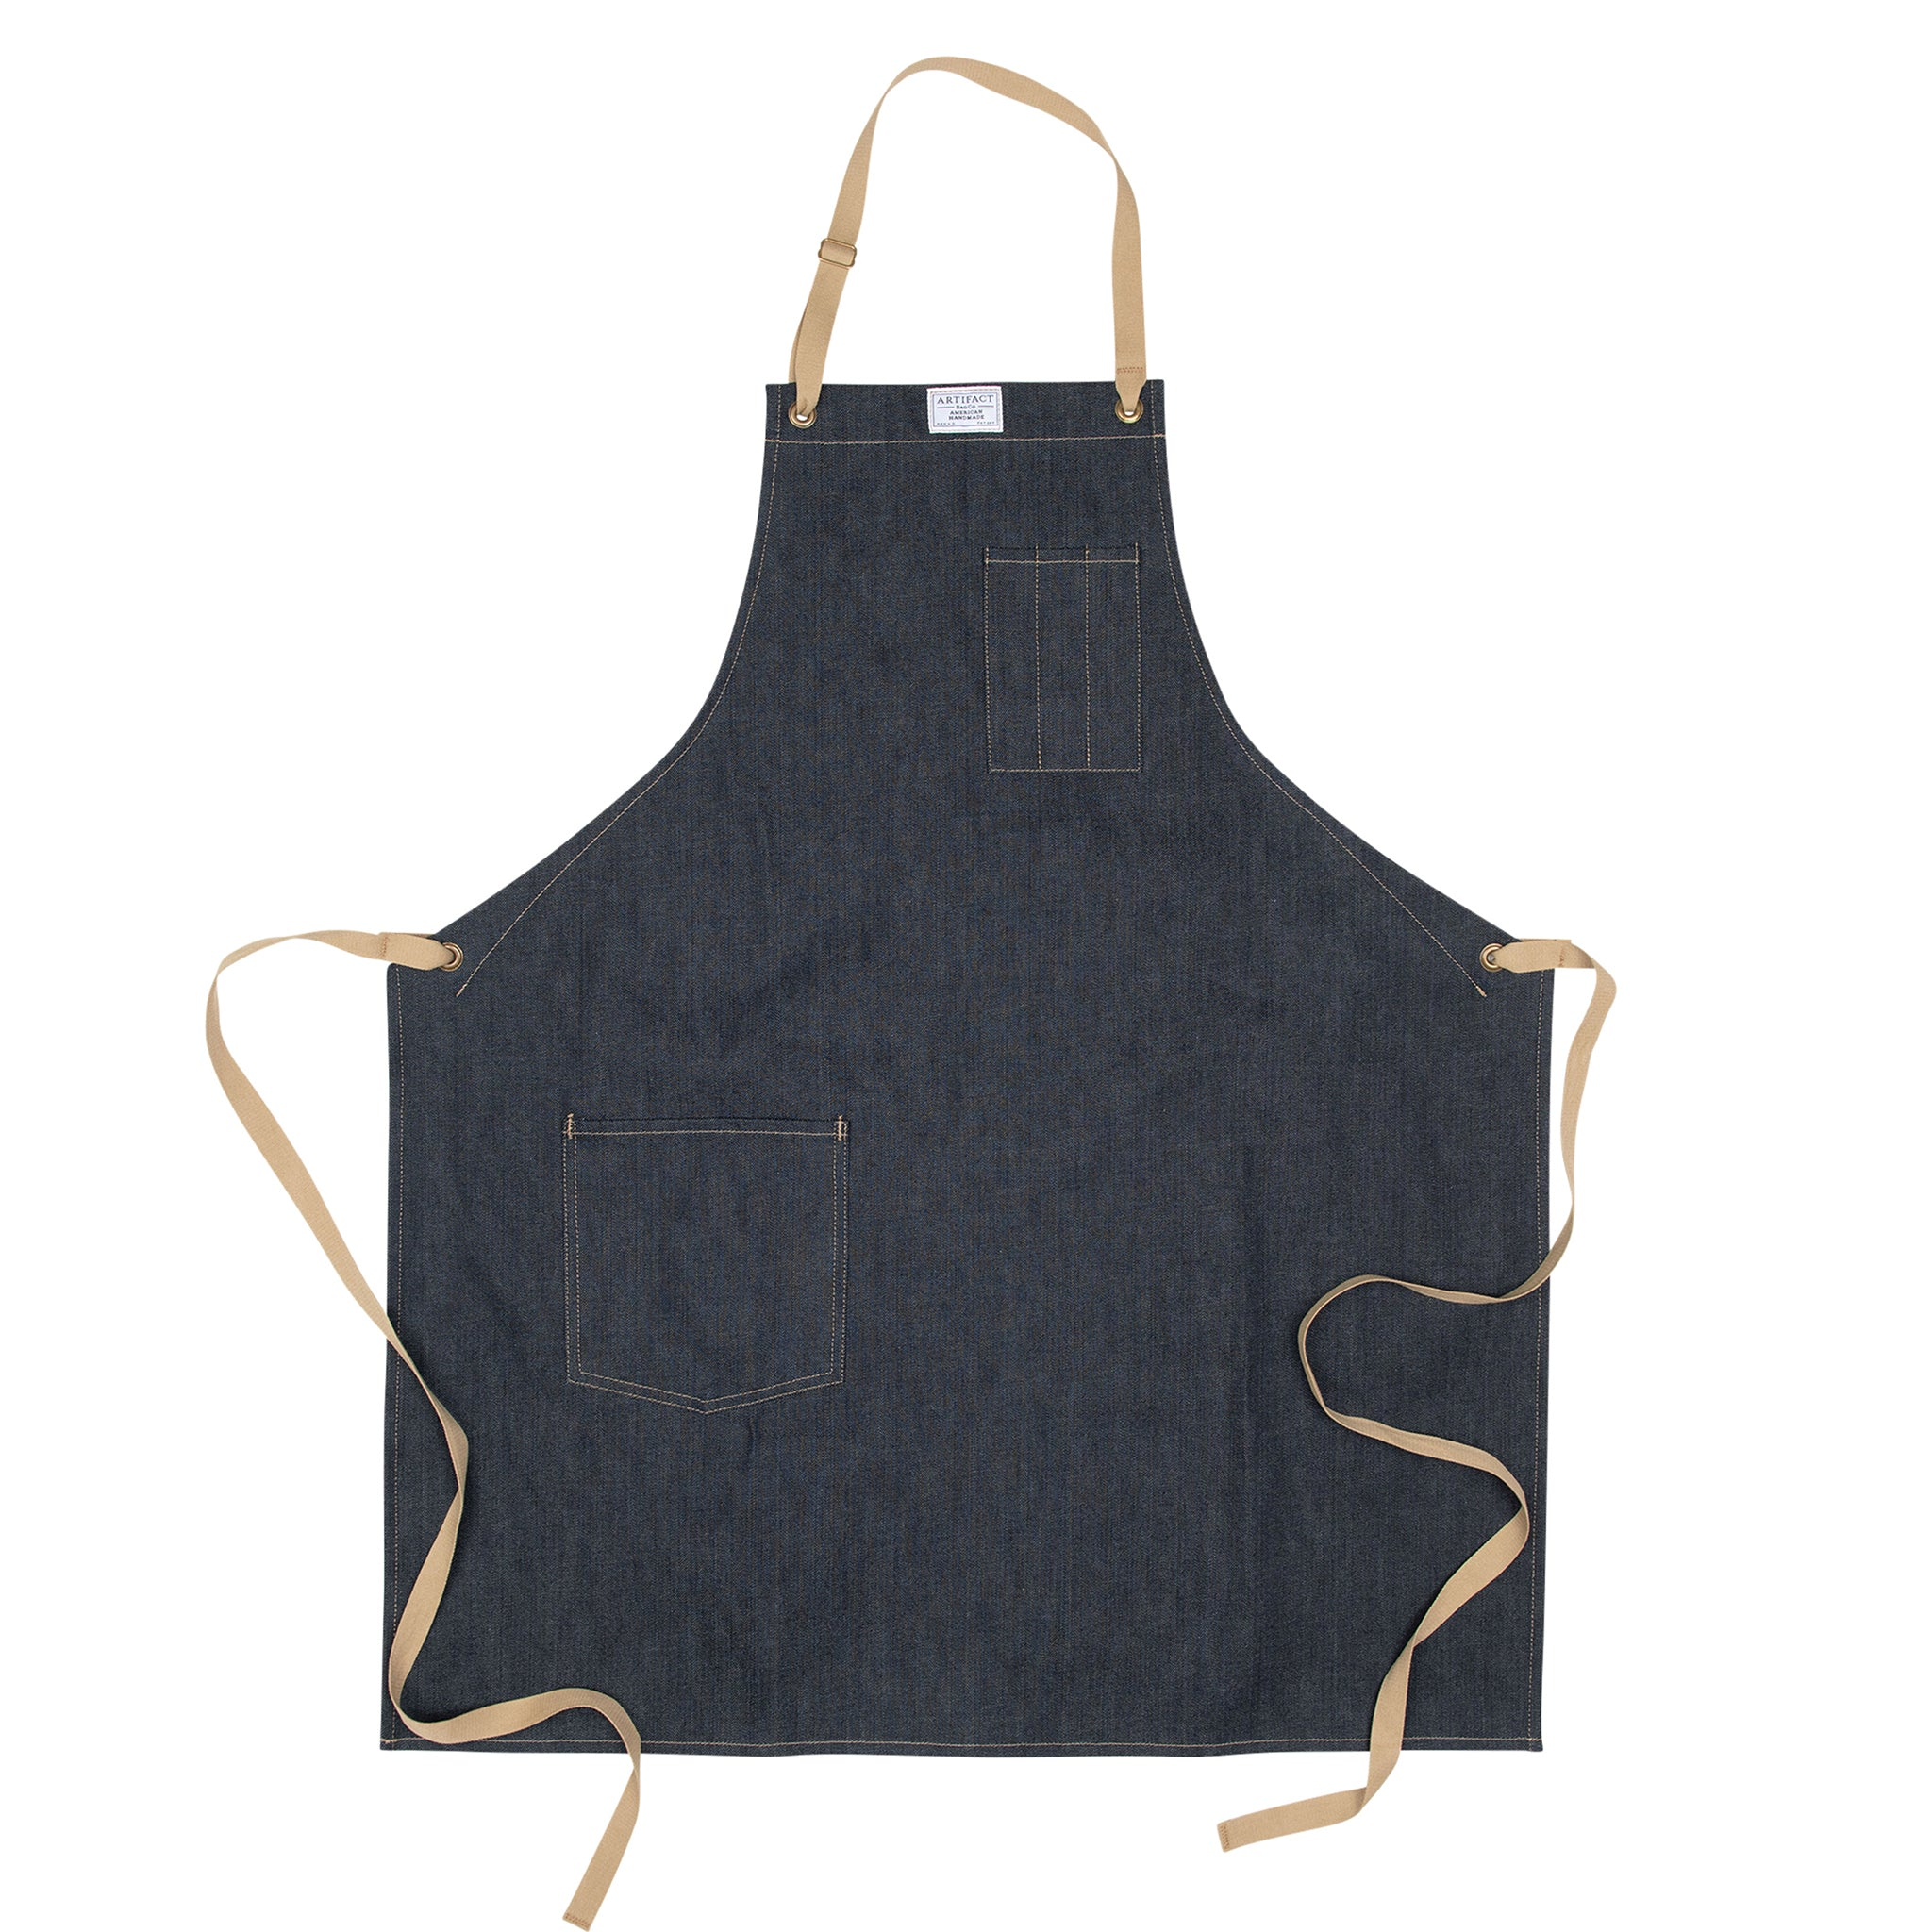 Kurabo Denim Culinary Apron w/ Neck Slider